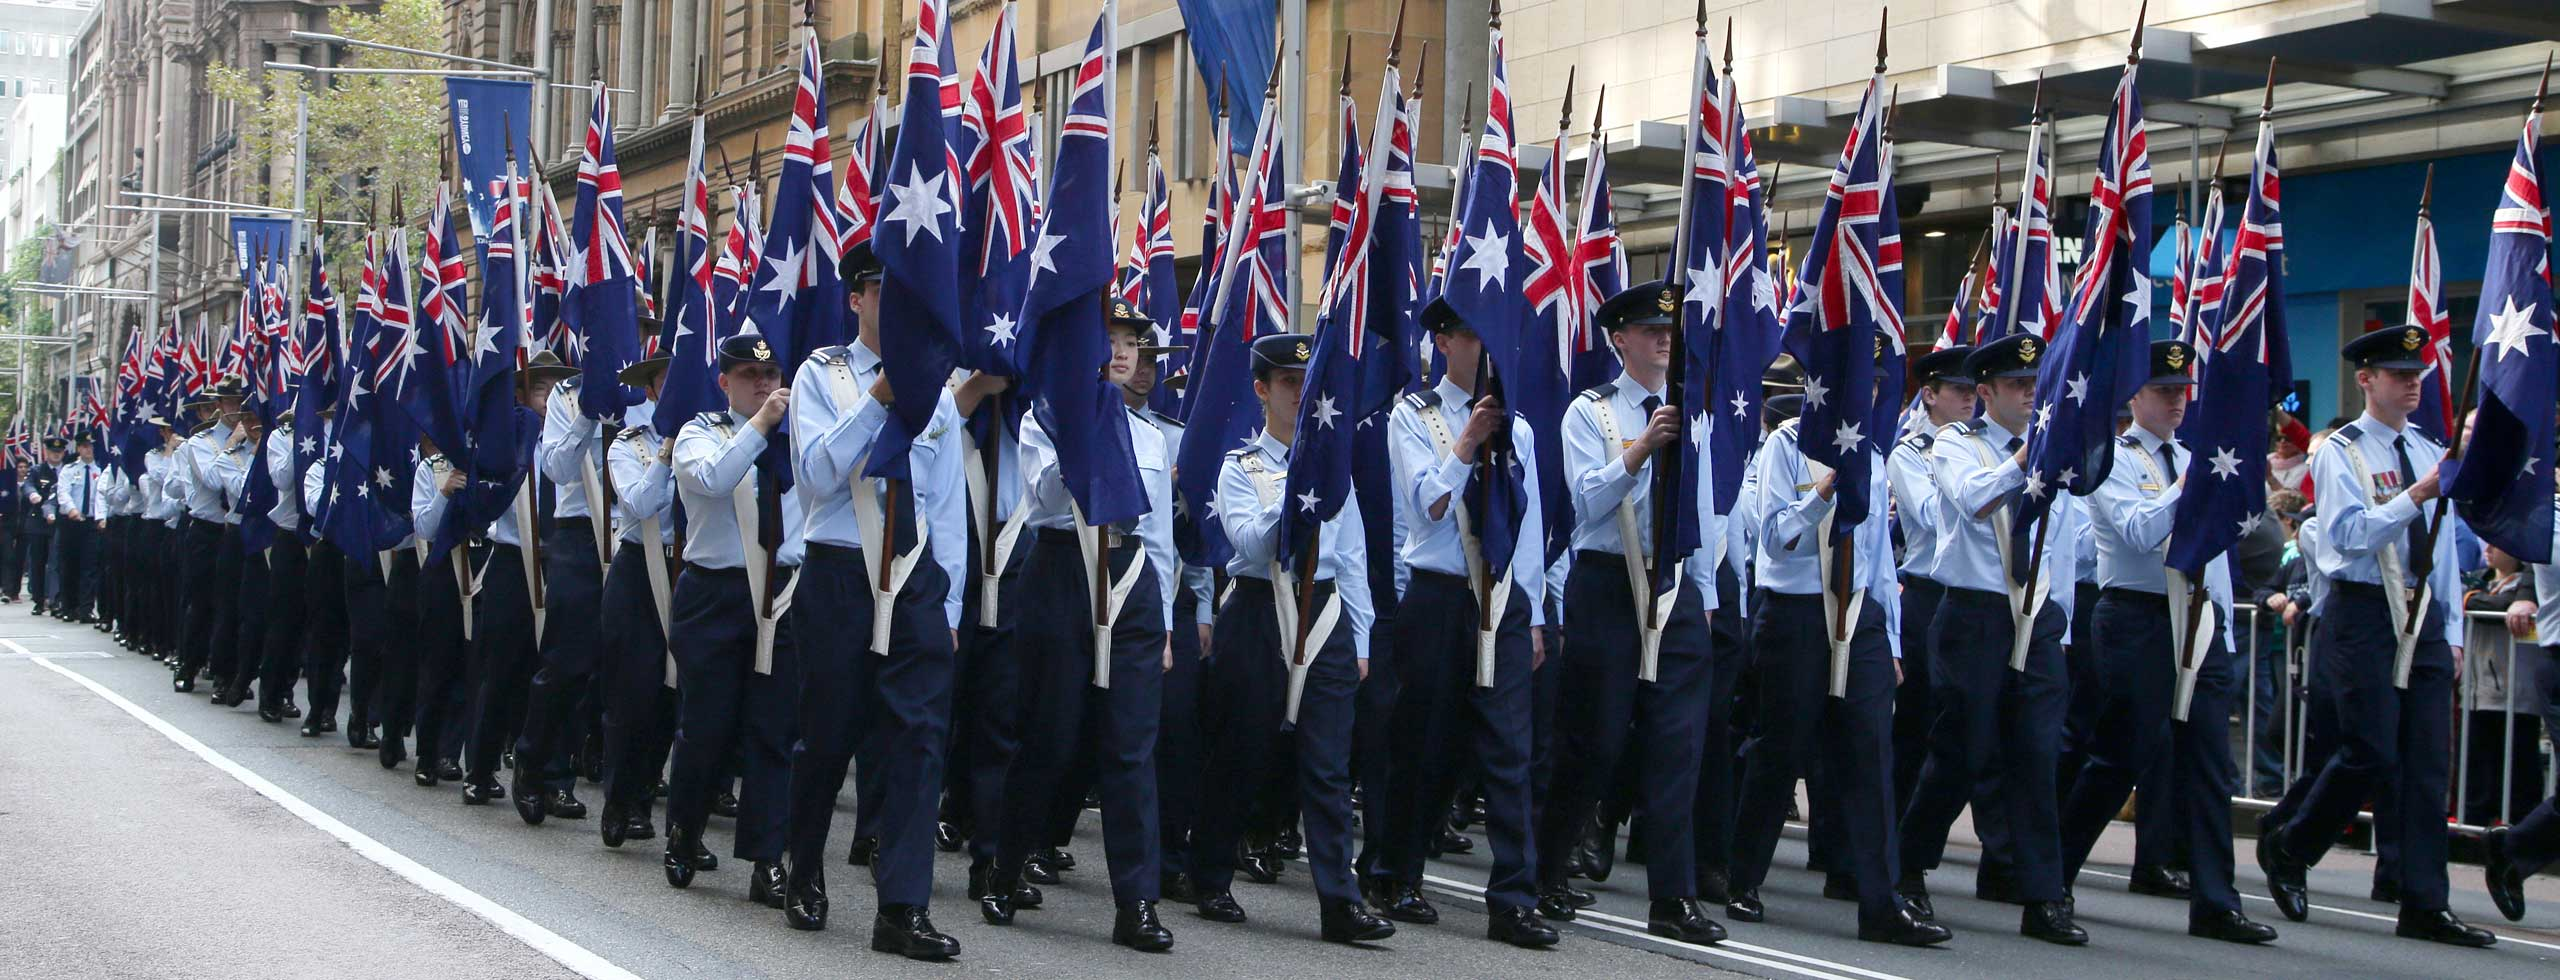 Air Force cadets carrying National flags march during an ANZAC Day parade in Sydney, April 25, 2015.